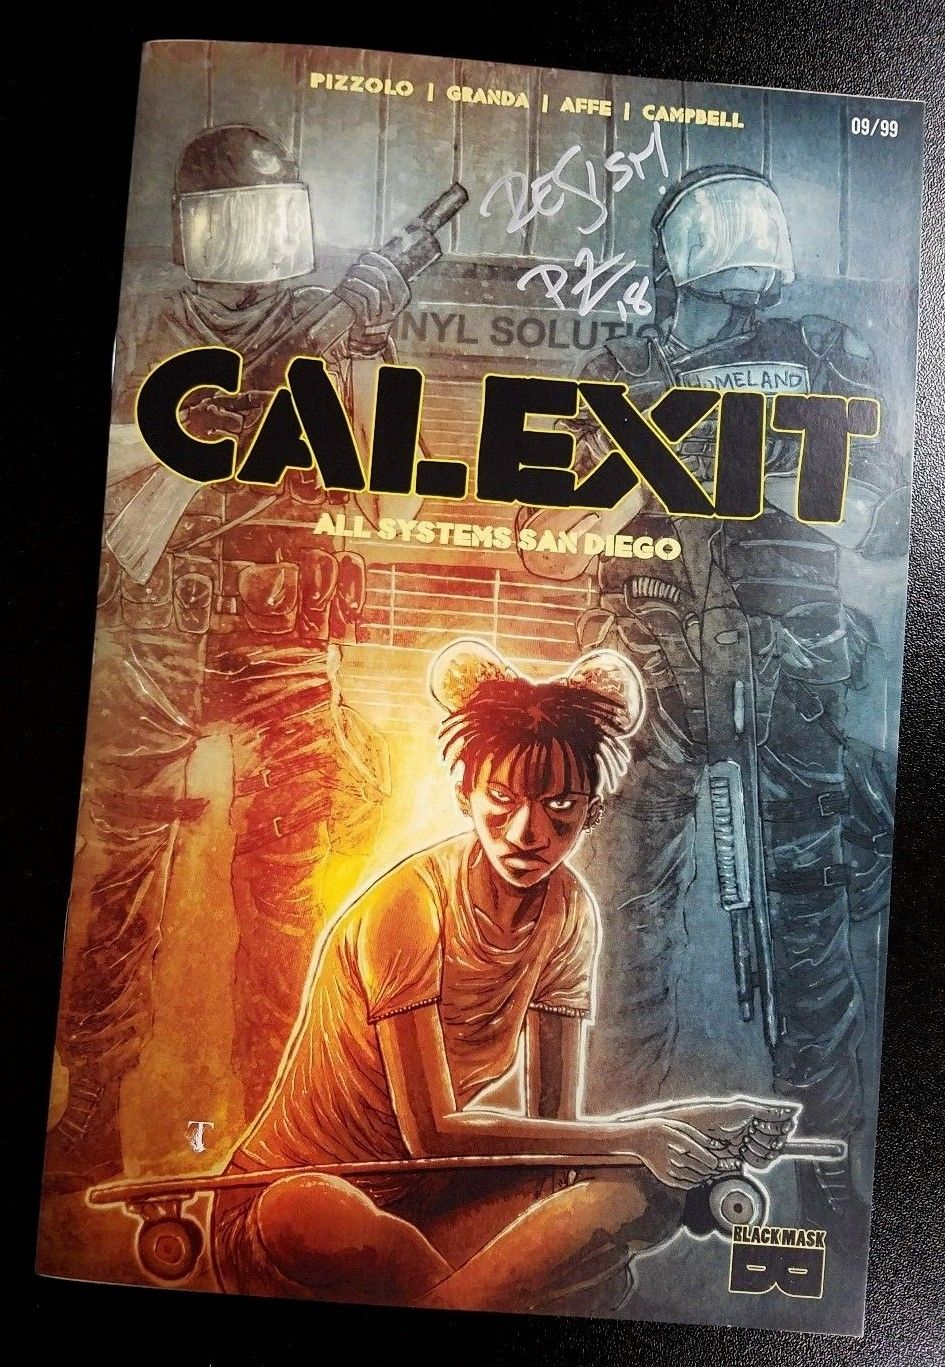 Calexit #1 All Systems San Diego (Limited to 99) SDCC SIGNED 2018